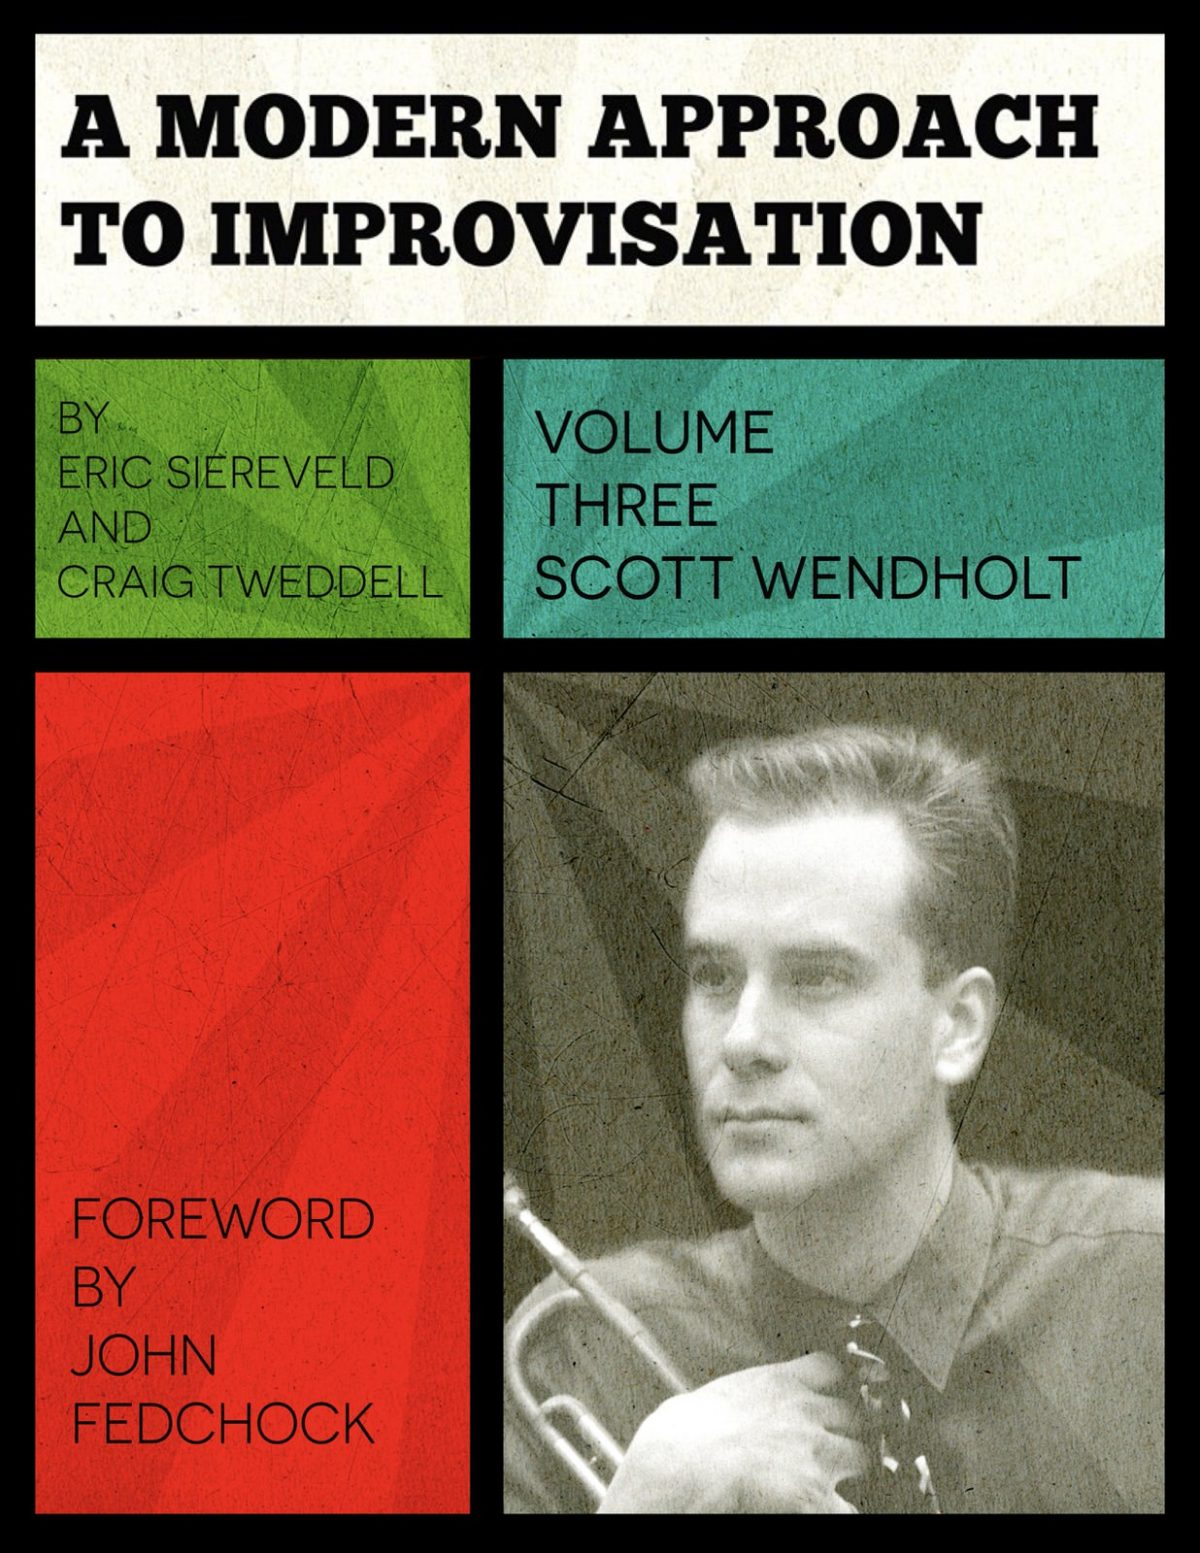 Siereveld, Modern Approach to Improvisation Volume 3 Wendholt-p001